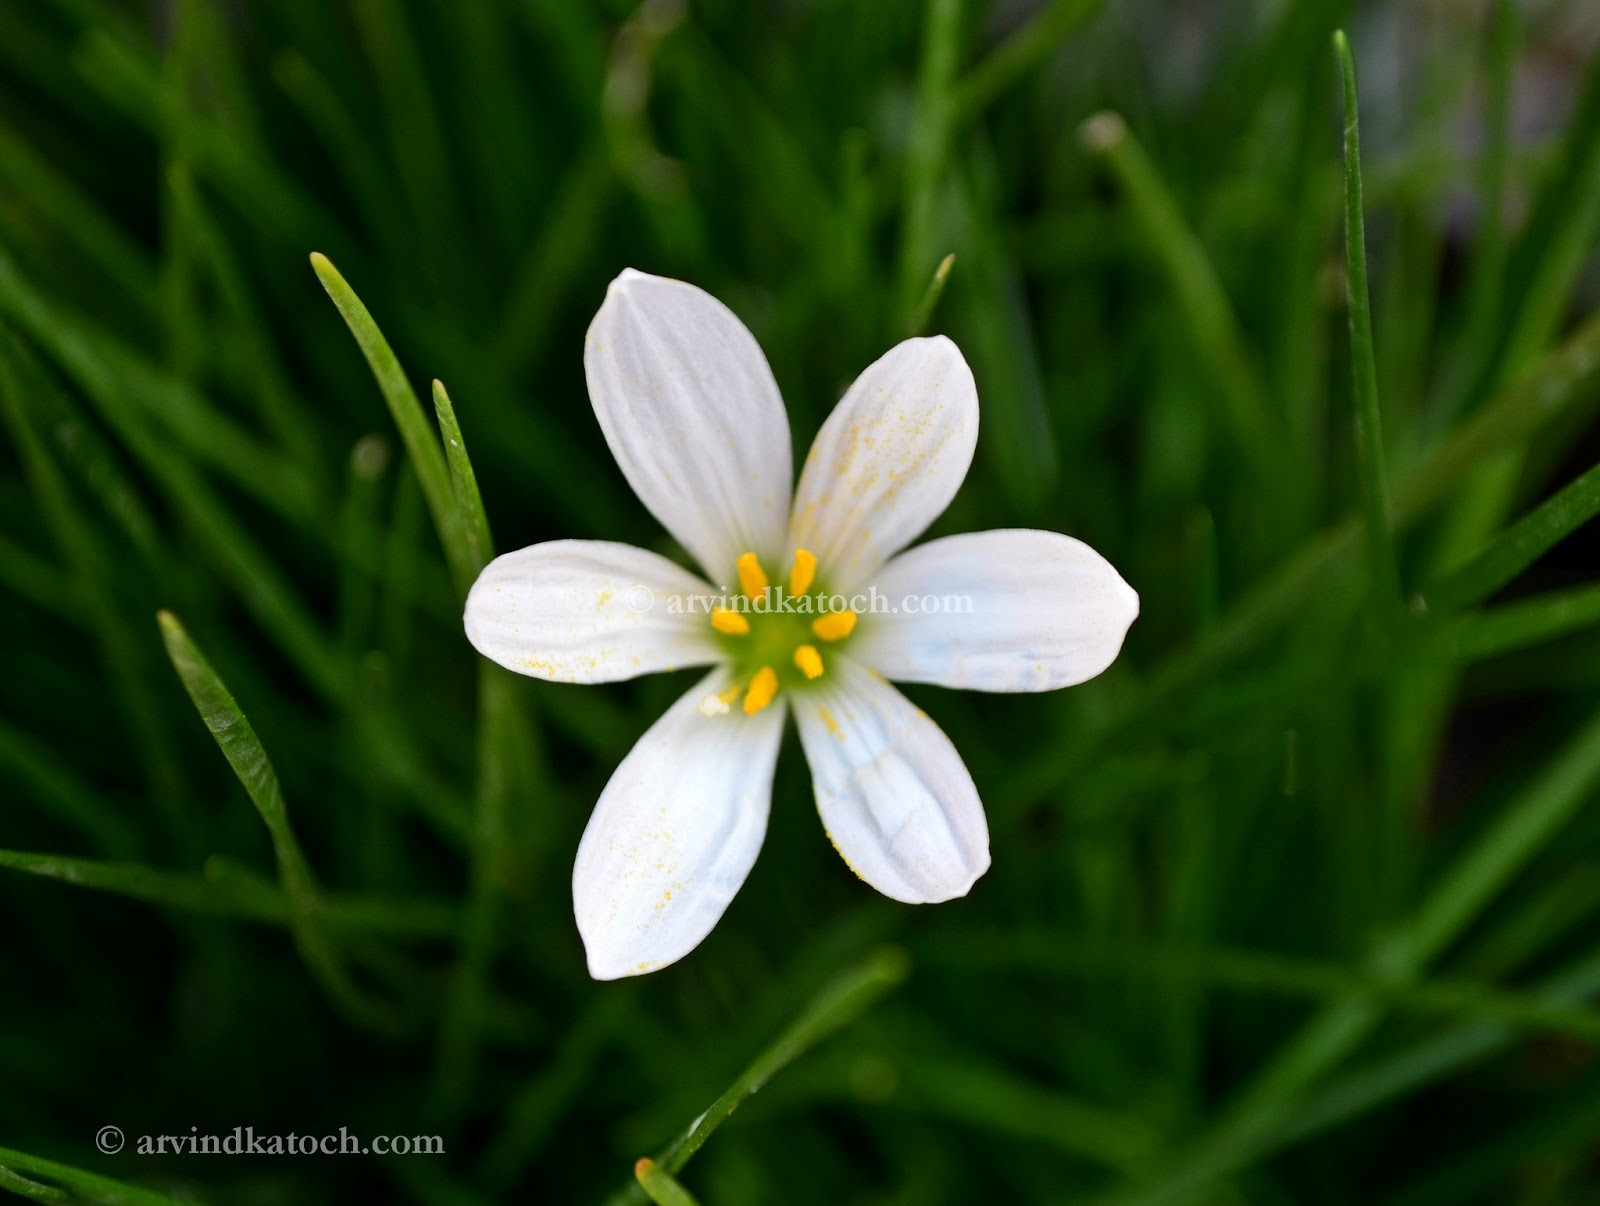 Arvind katoch photography hd pic of beautiful white grass flower white grass flowers flower grass mightylinksfo